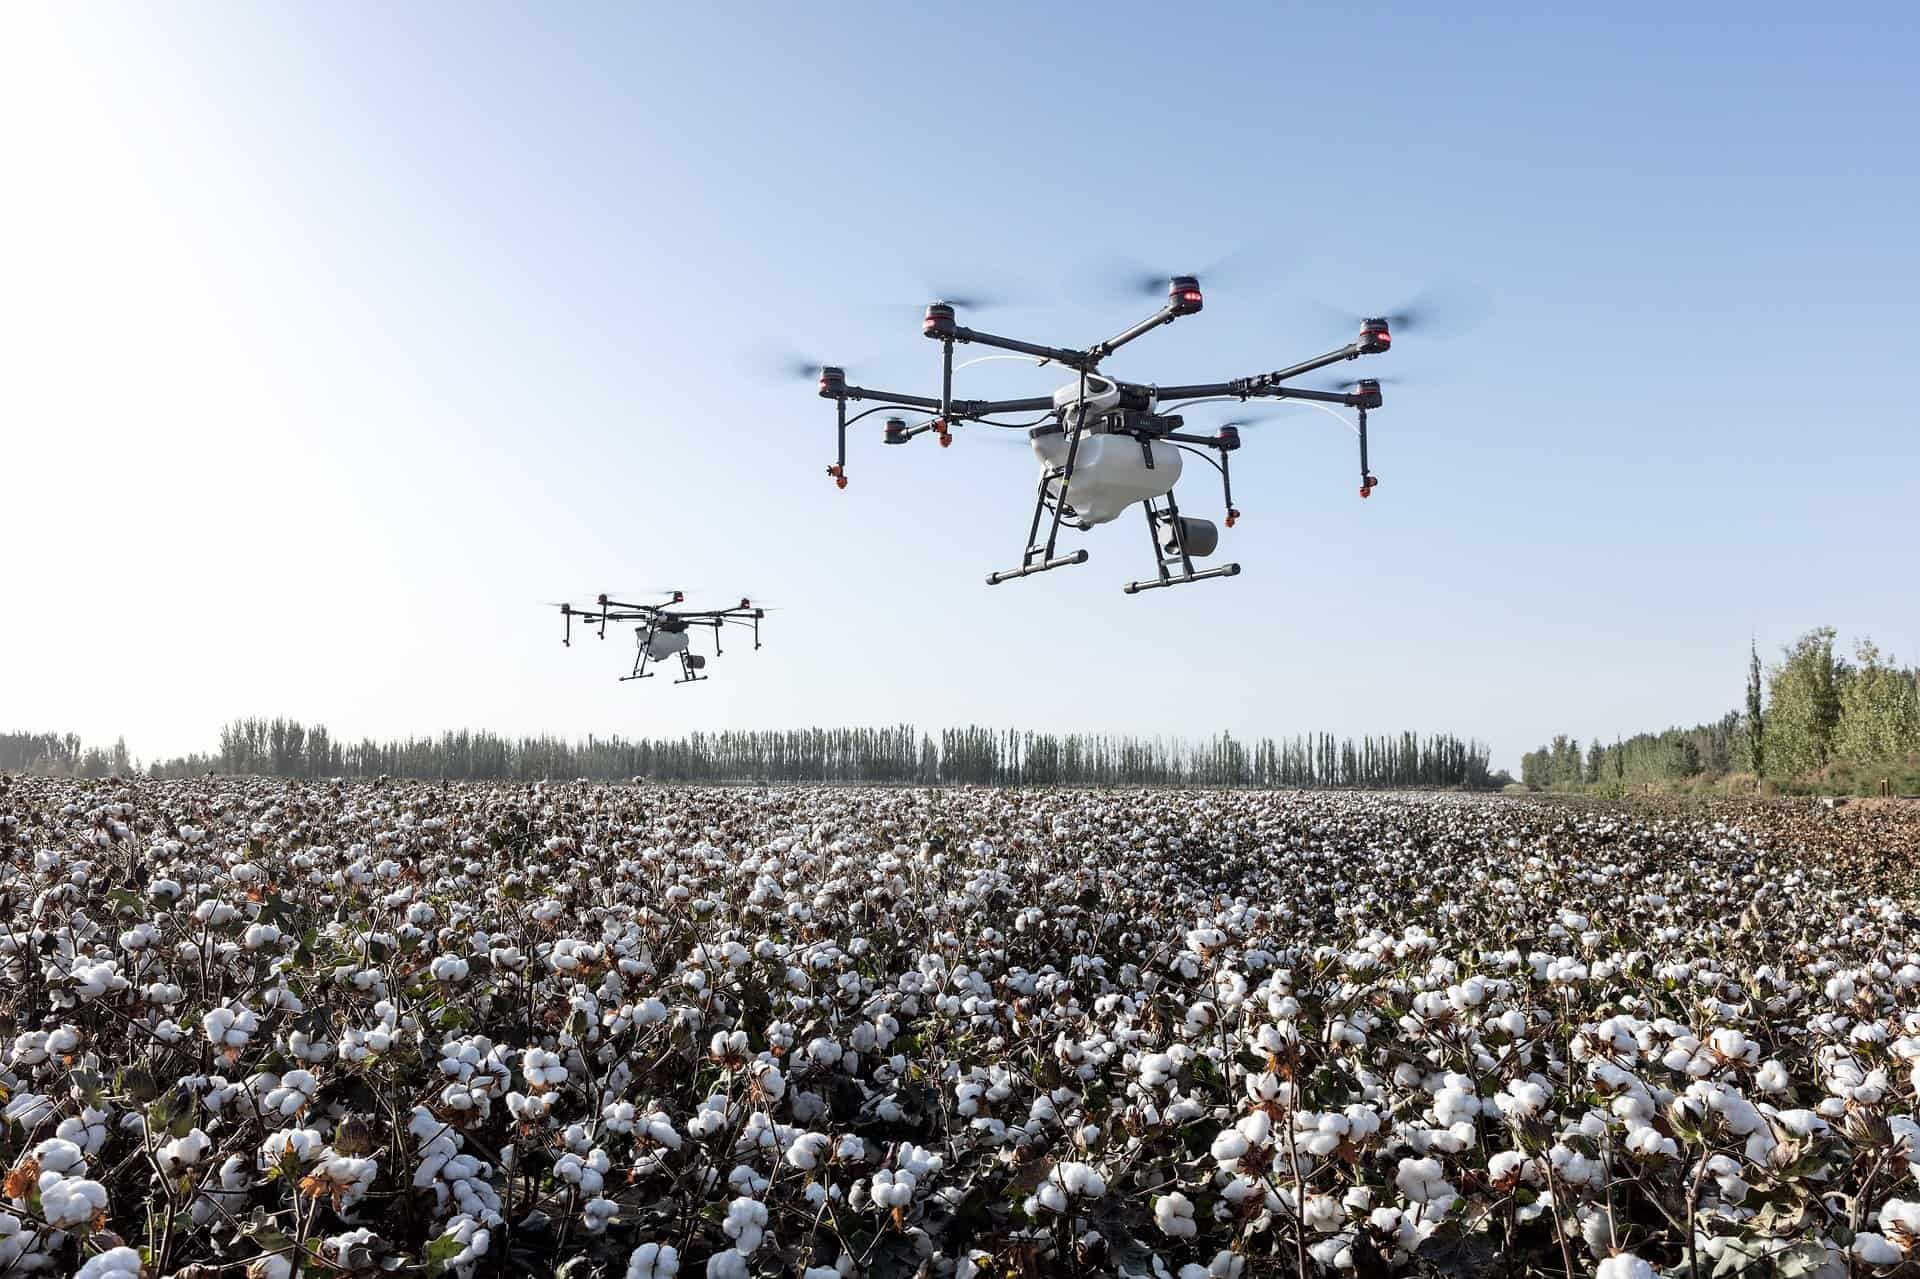 Cotton field being watered by drones